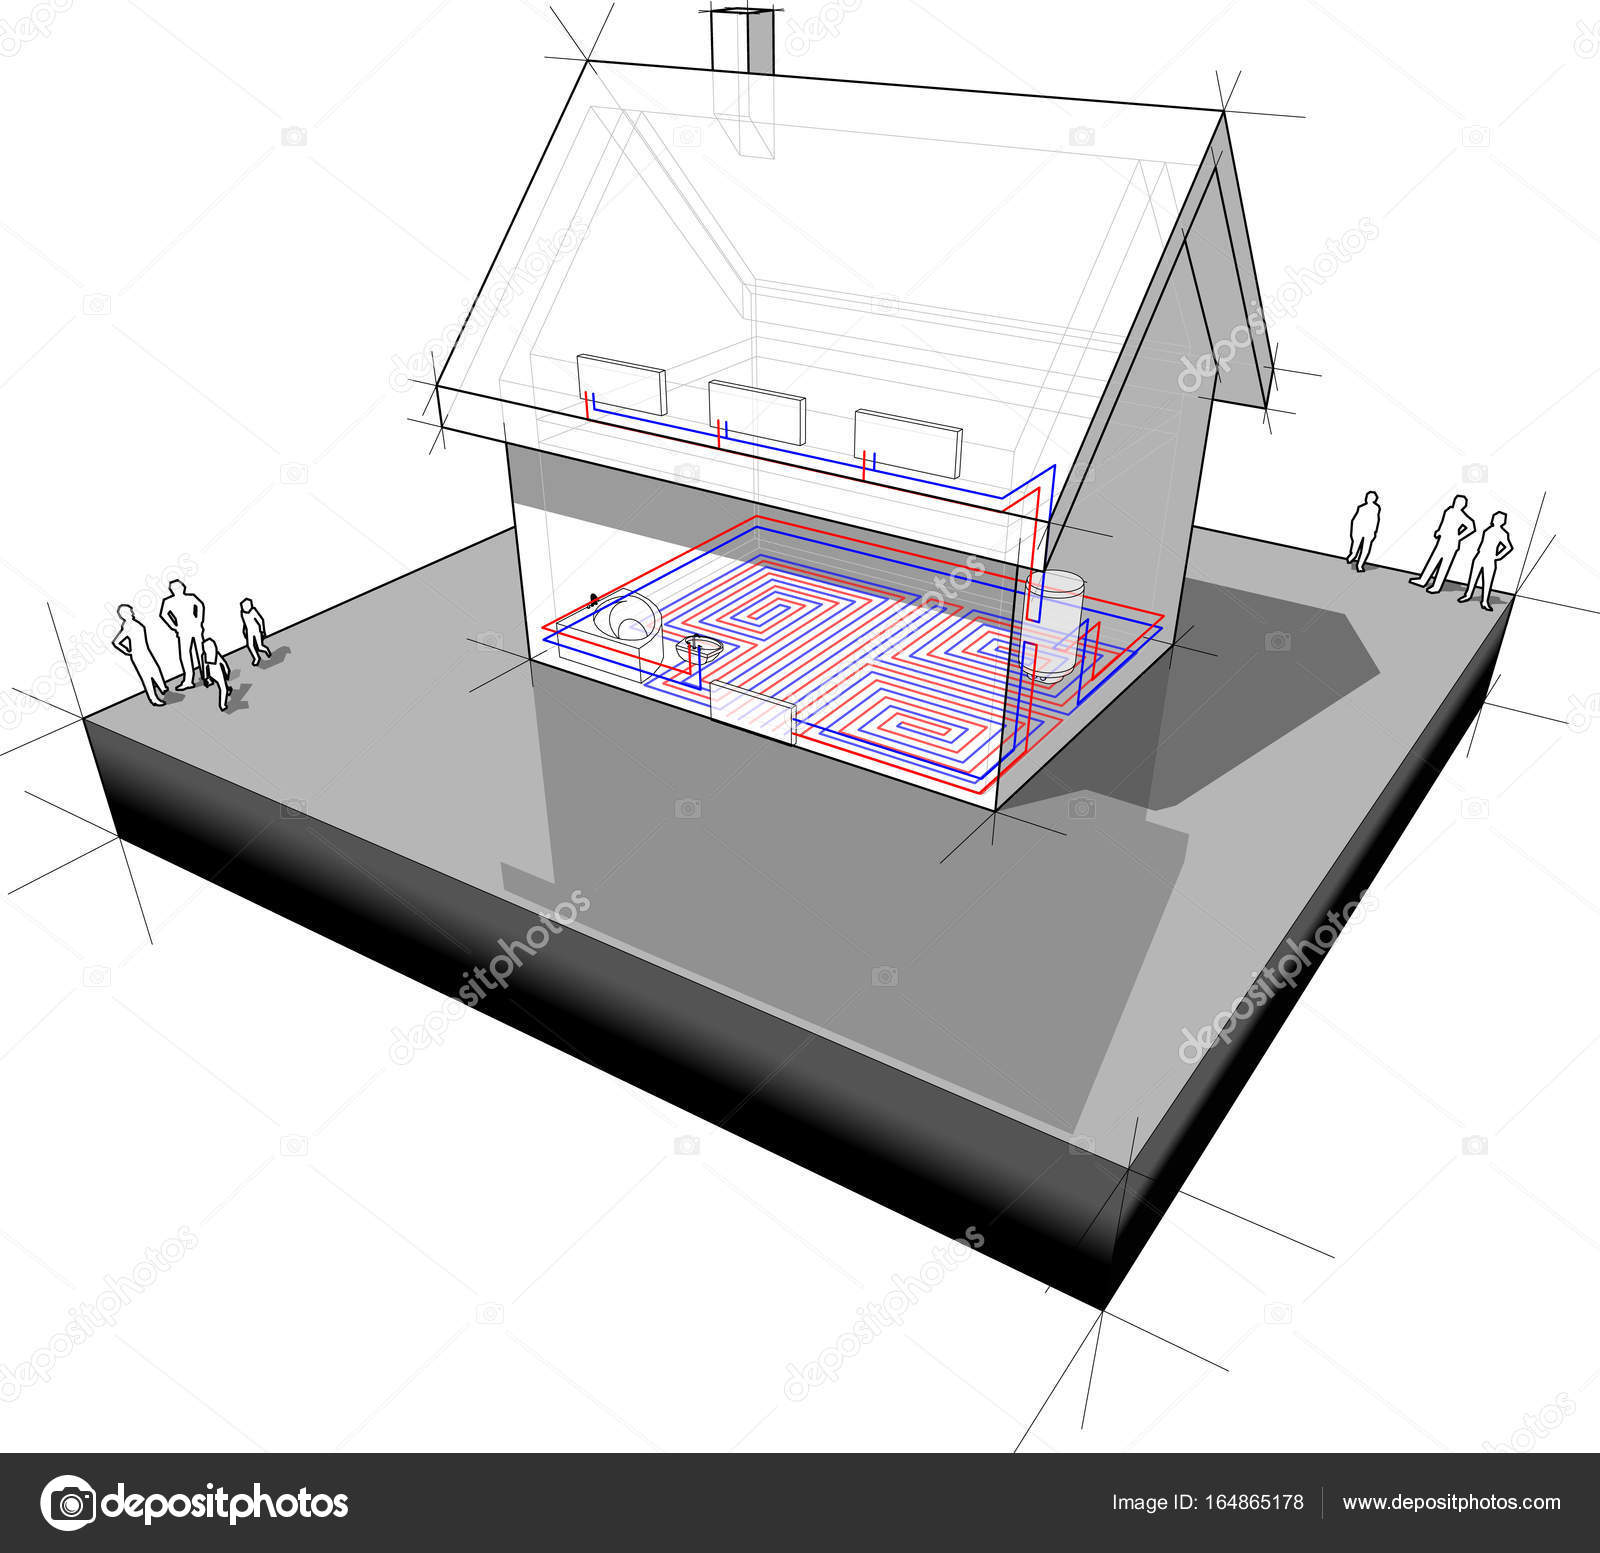 Diagram of a detached house with floor heating and radiators stock diagram of a detached house with floor heating and radiators stock vector ccuart Images